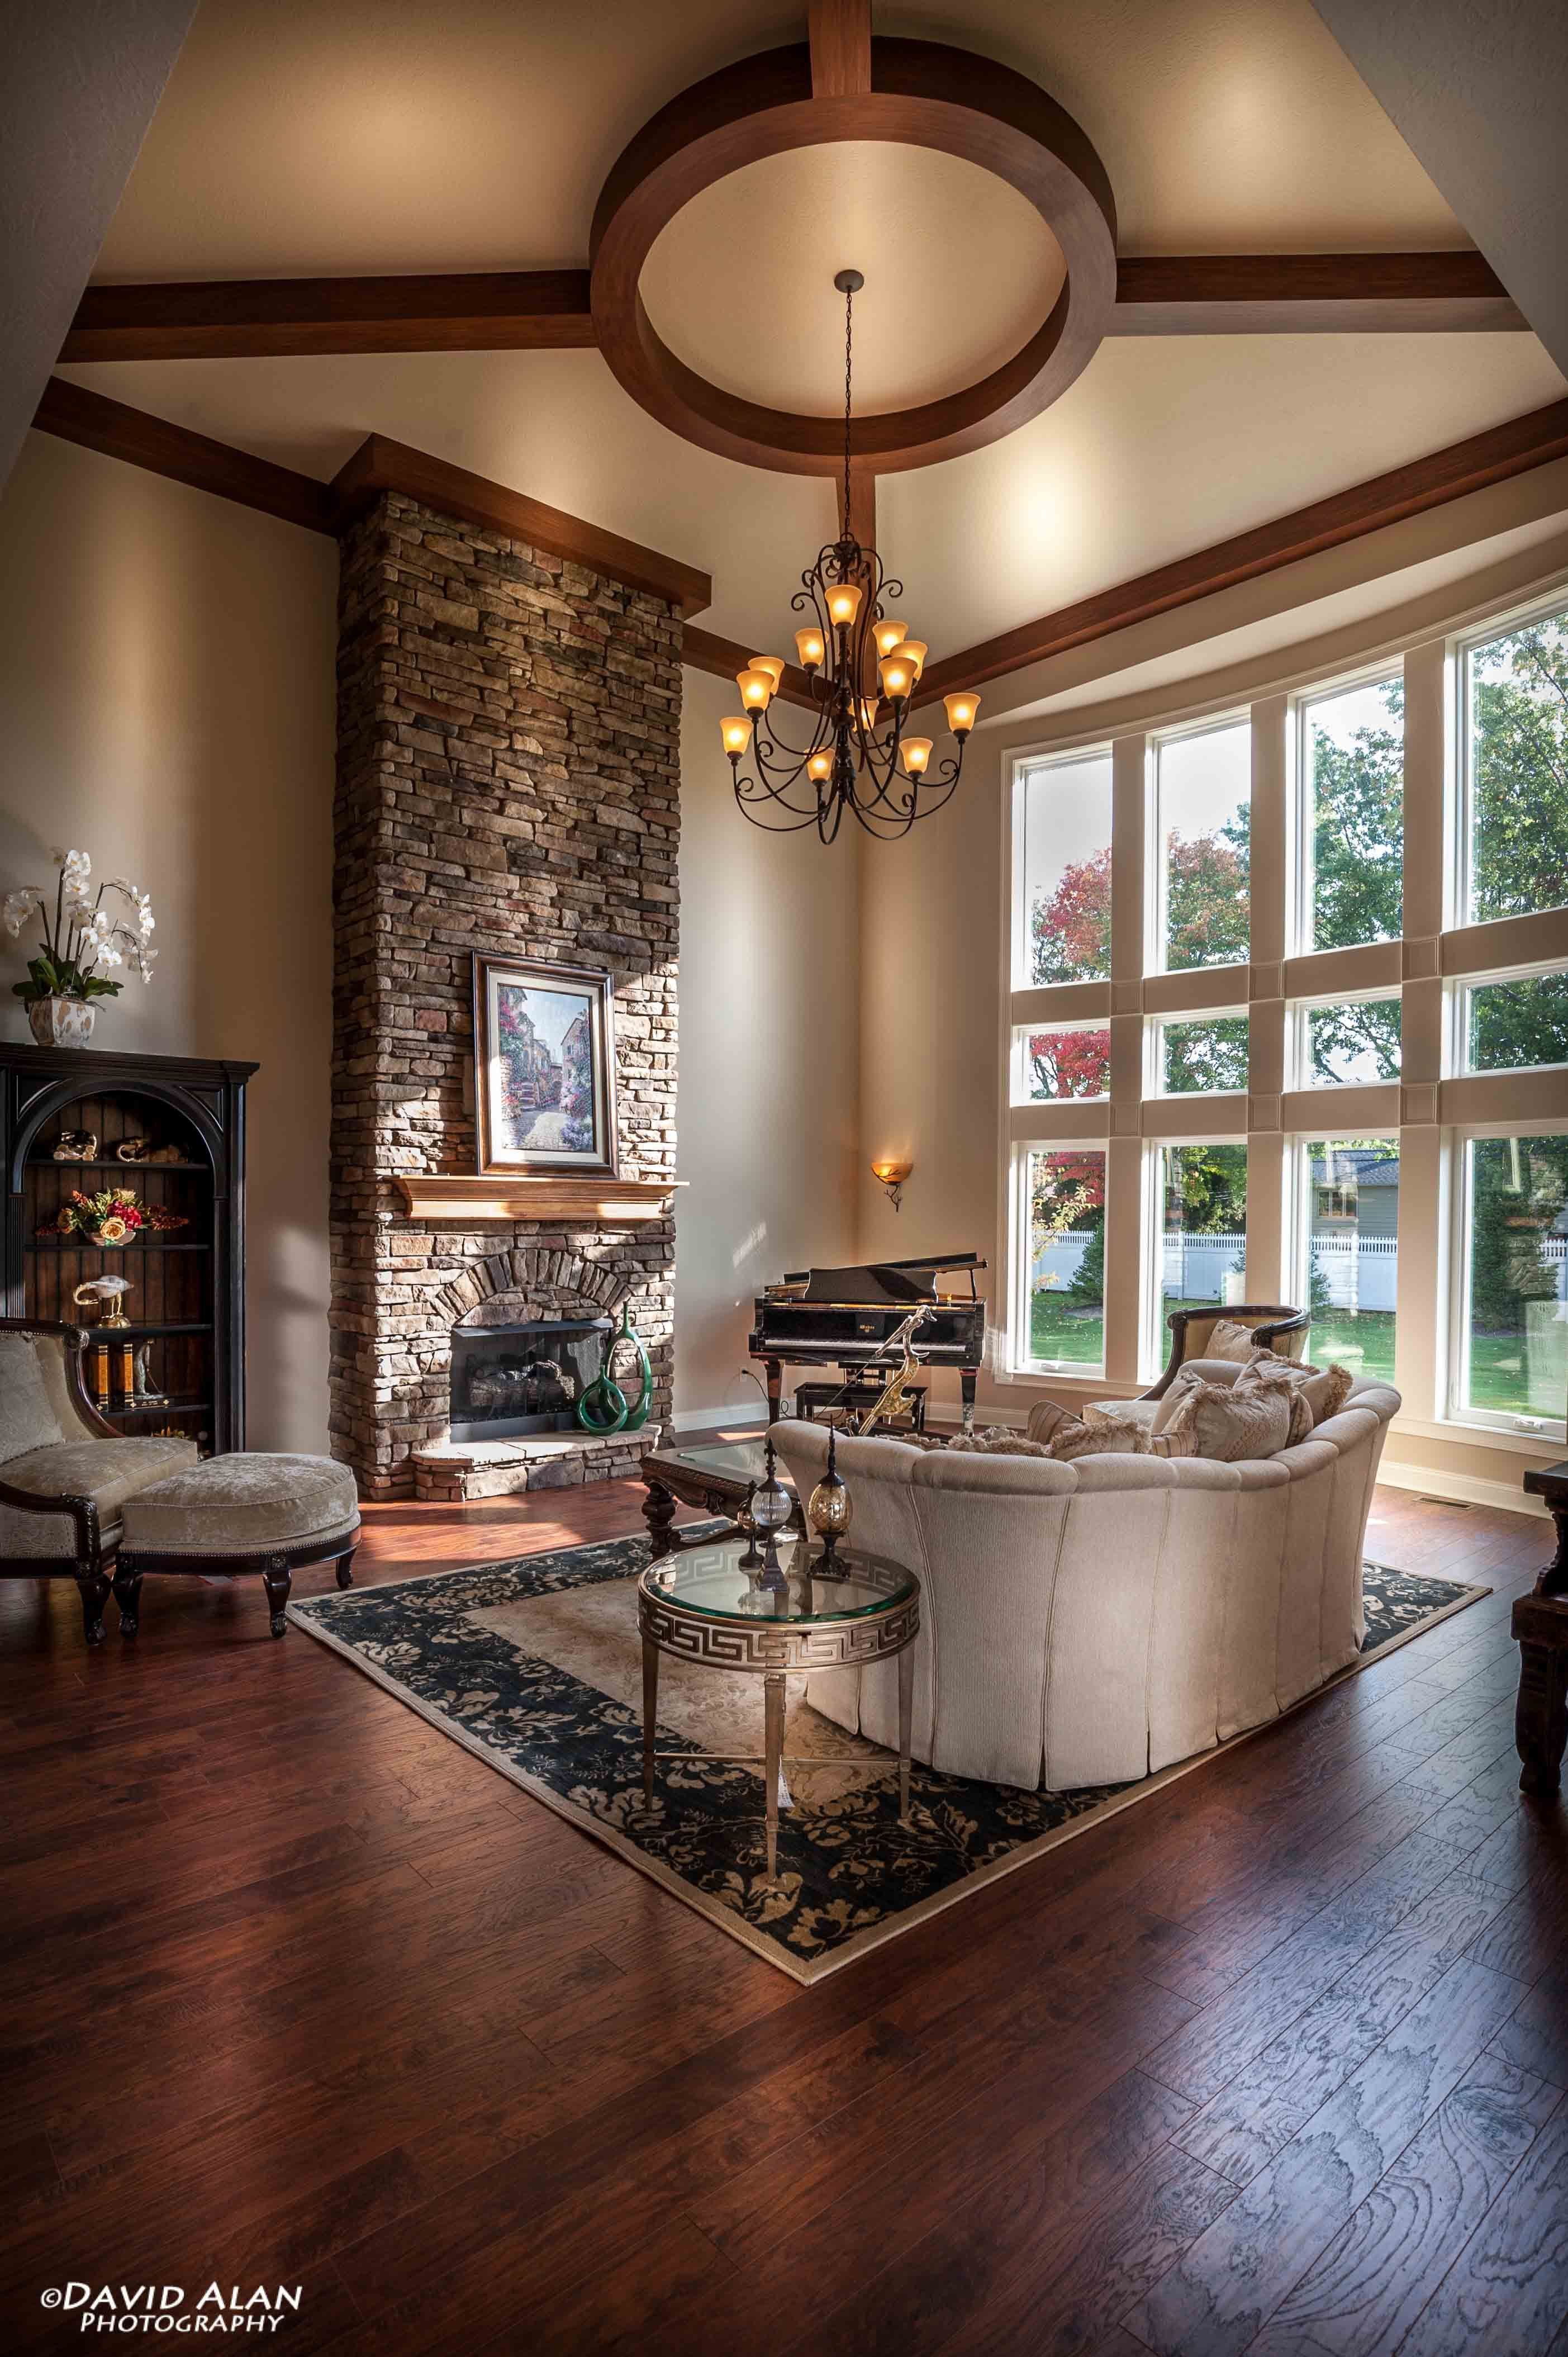 Great Room Additions Home Design Ideas Pictures Remodel And Decor: Great Room Built, Designed And Furnished By Perrino Builders And Perrino Furniture. Www.pe